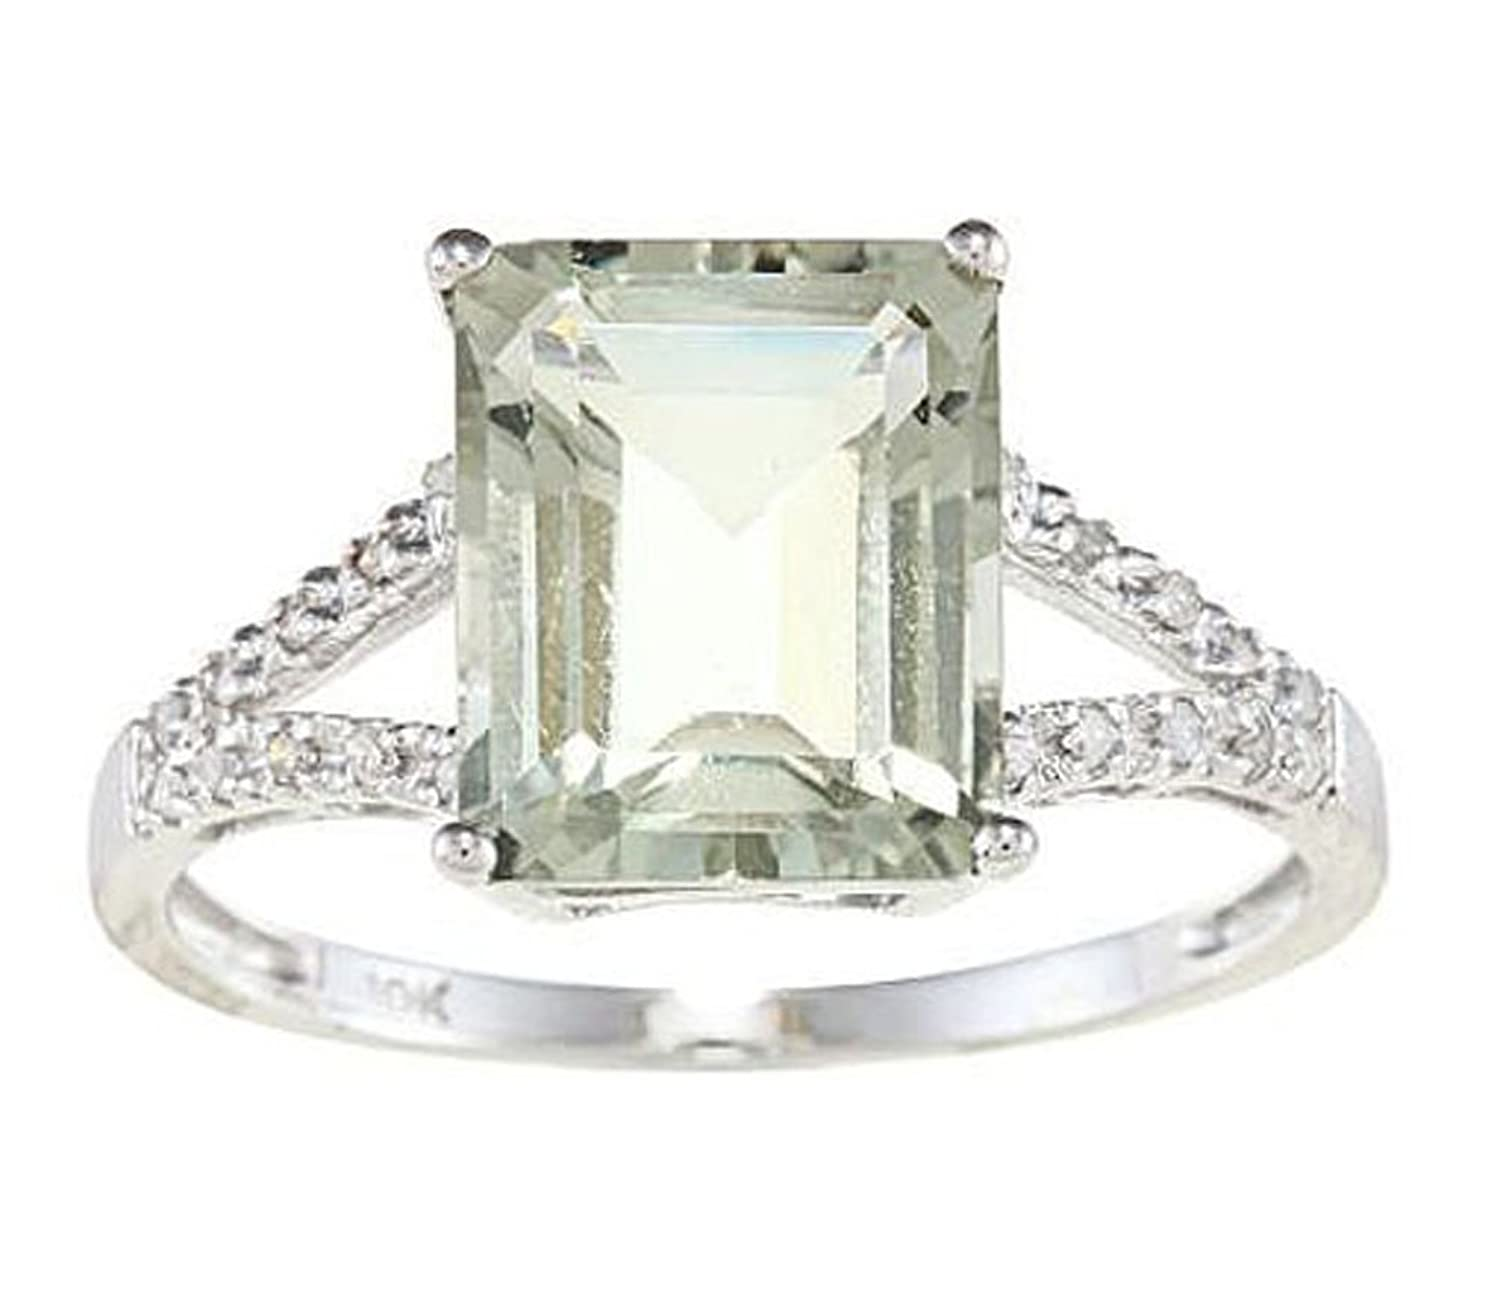 10k White Gold Oval 5.20ct Green Amethyst and Diamond Halo Ring G-H, I1-I2